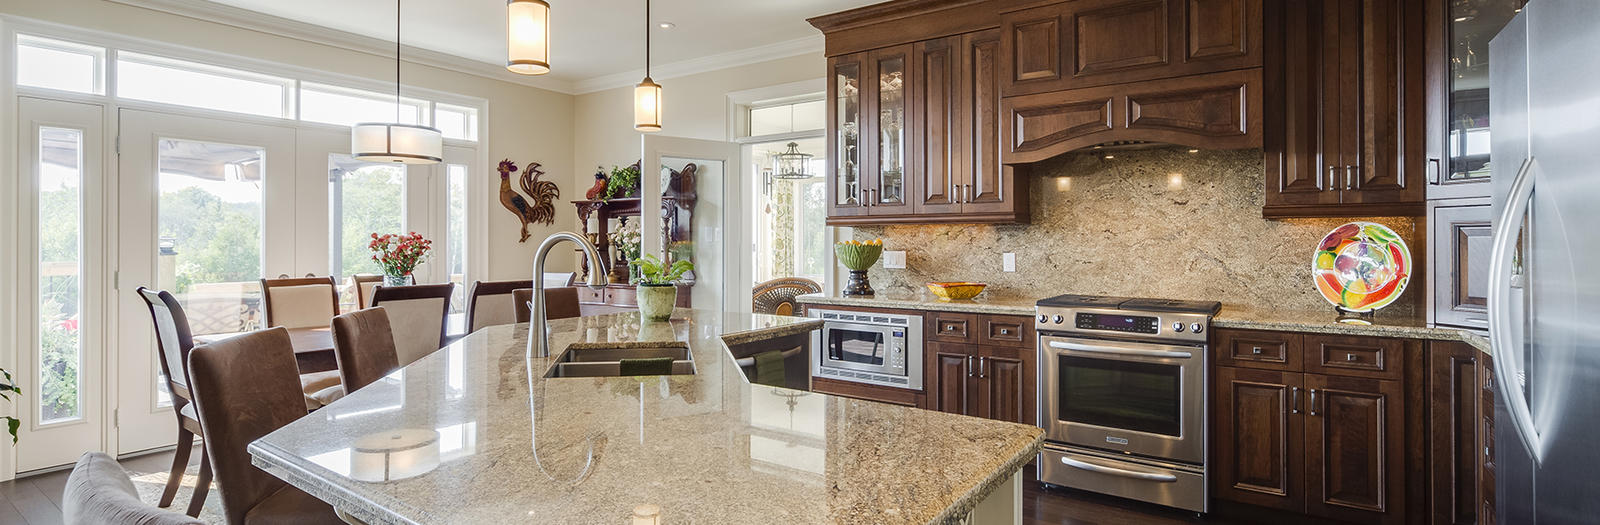 Traditional Kitchen with high arc kitchen faucet with pull out sprayer